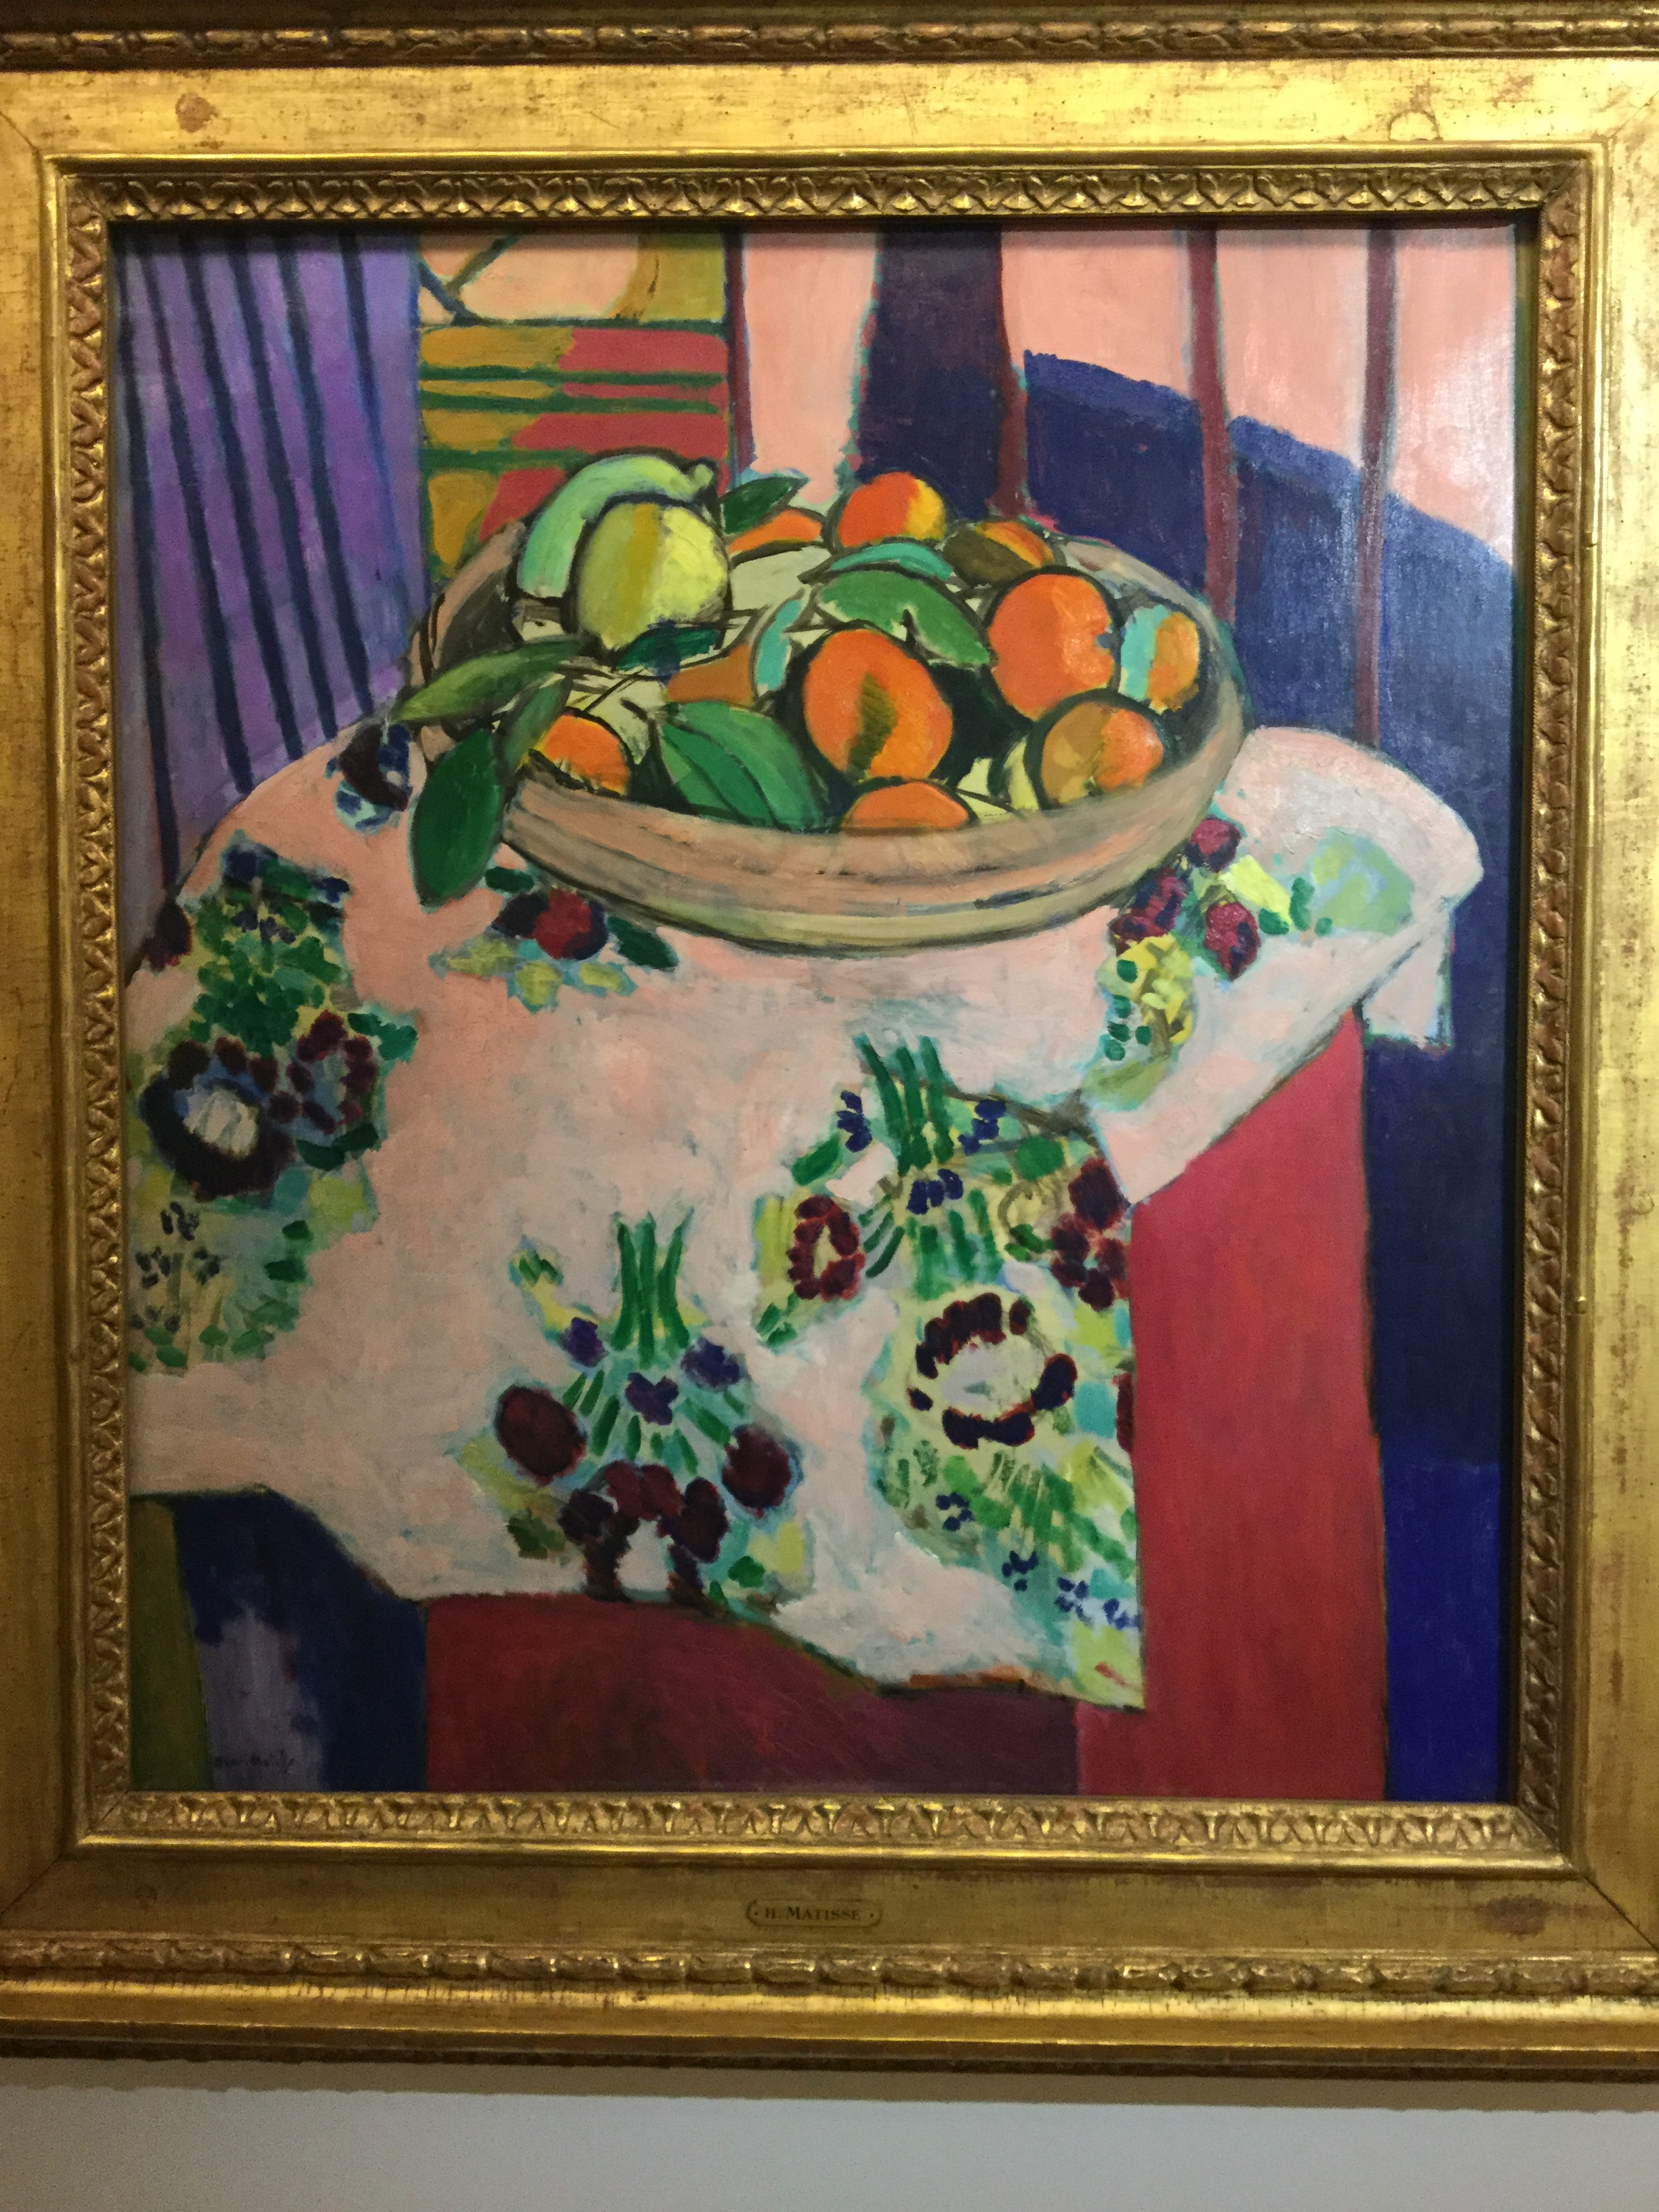 This still life with fruit is by Henri Matisse, but it was in Pablo Picasso's private collection so we saw it at the Picasso museum. We talked about composition on seeing this piece - it is a bit unusual in that the entire bottom half of the image is not of the main thing (fruit). Maybe Matisse used this for extra emphasis...